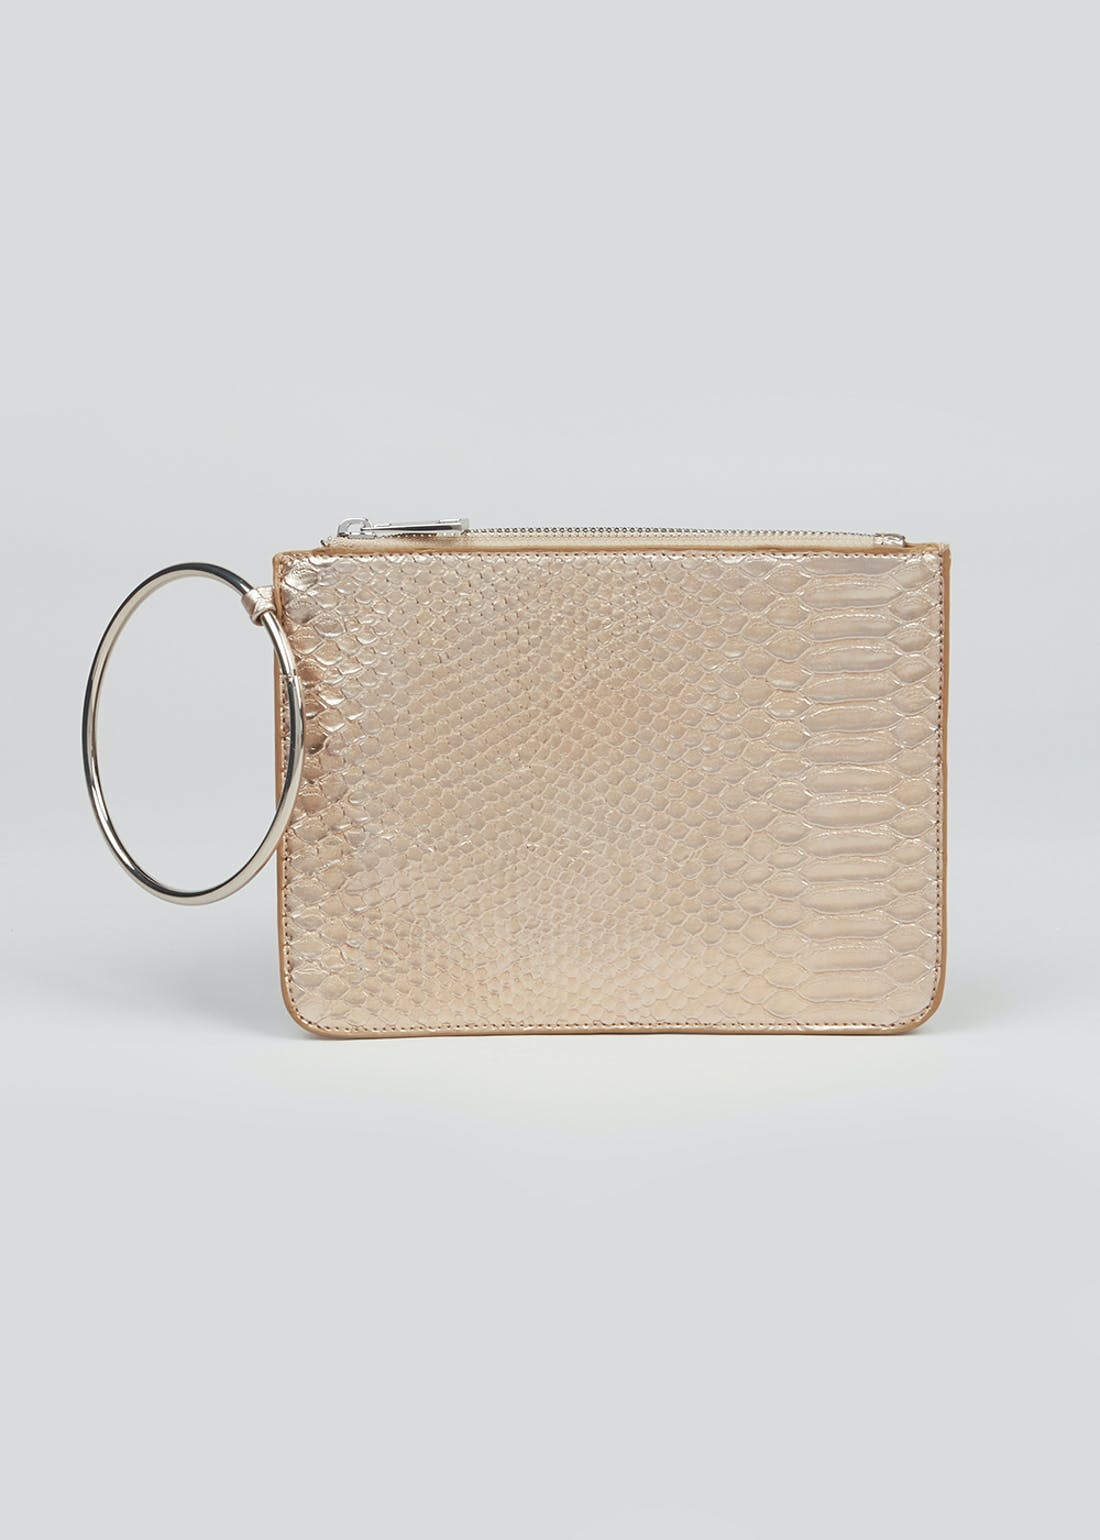 Ring Handle Metallic Clutch Bag